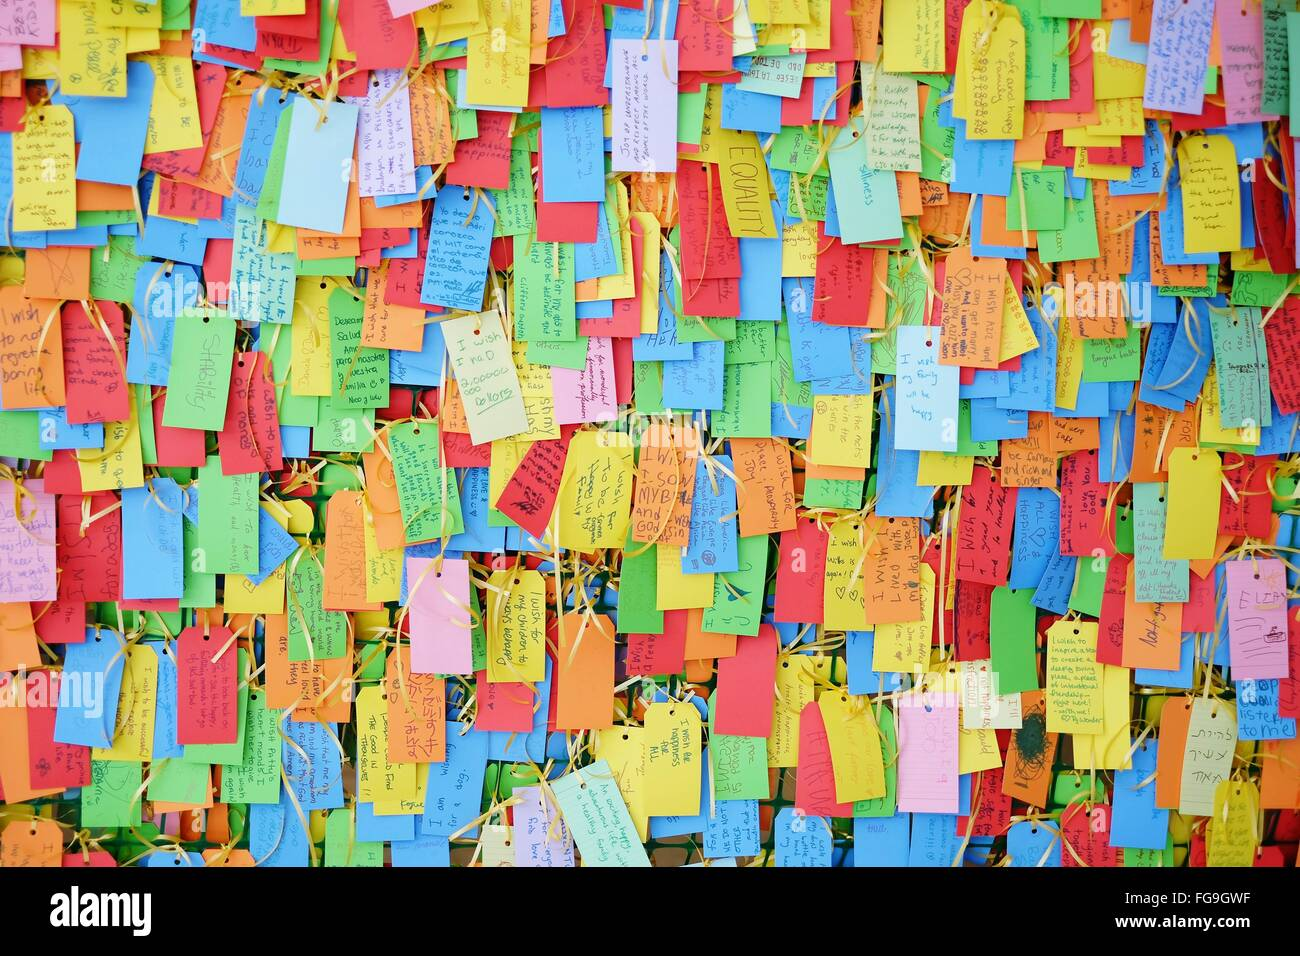 Full Frame Shot Of Wishing Notes On Wall - Stock Image